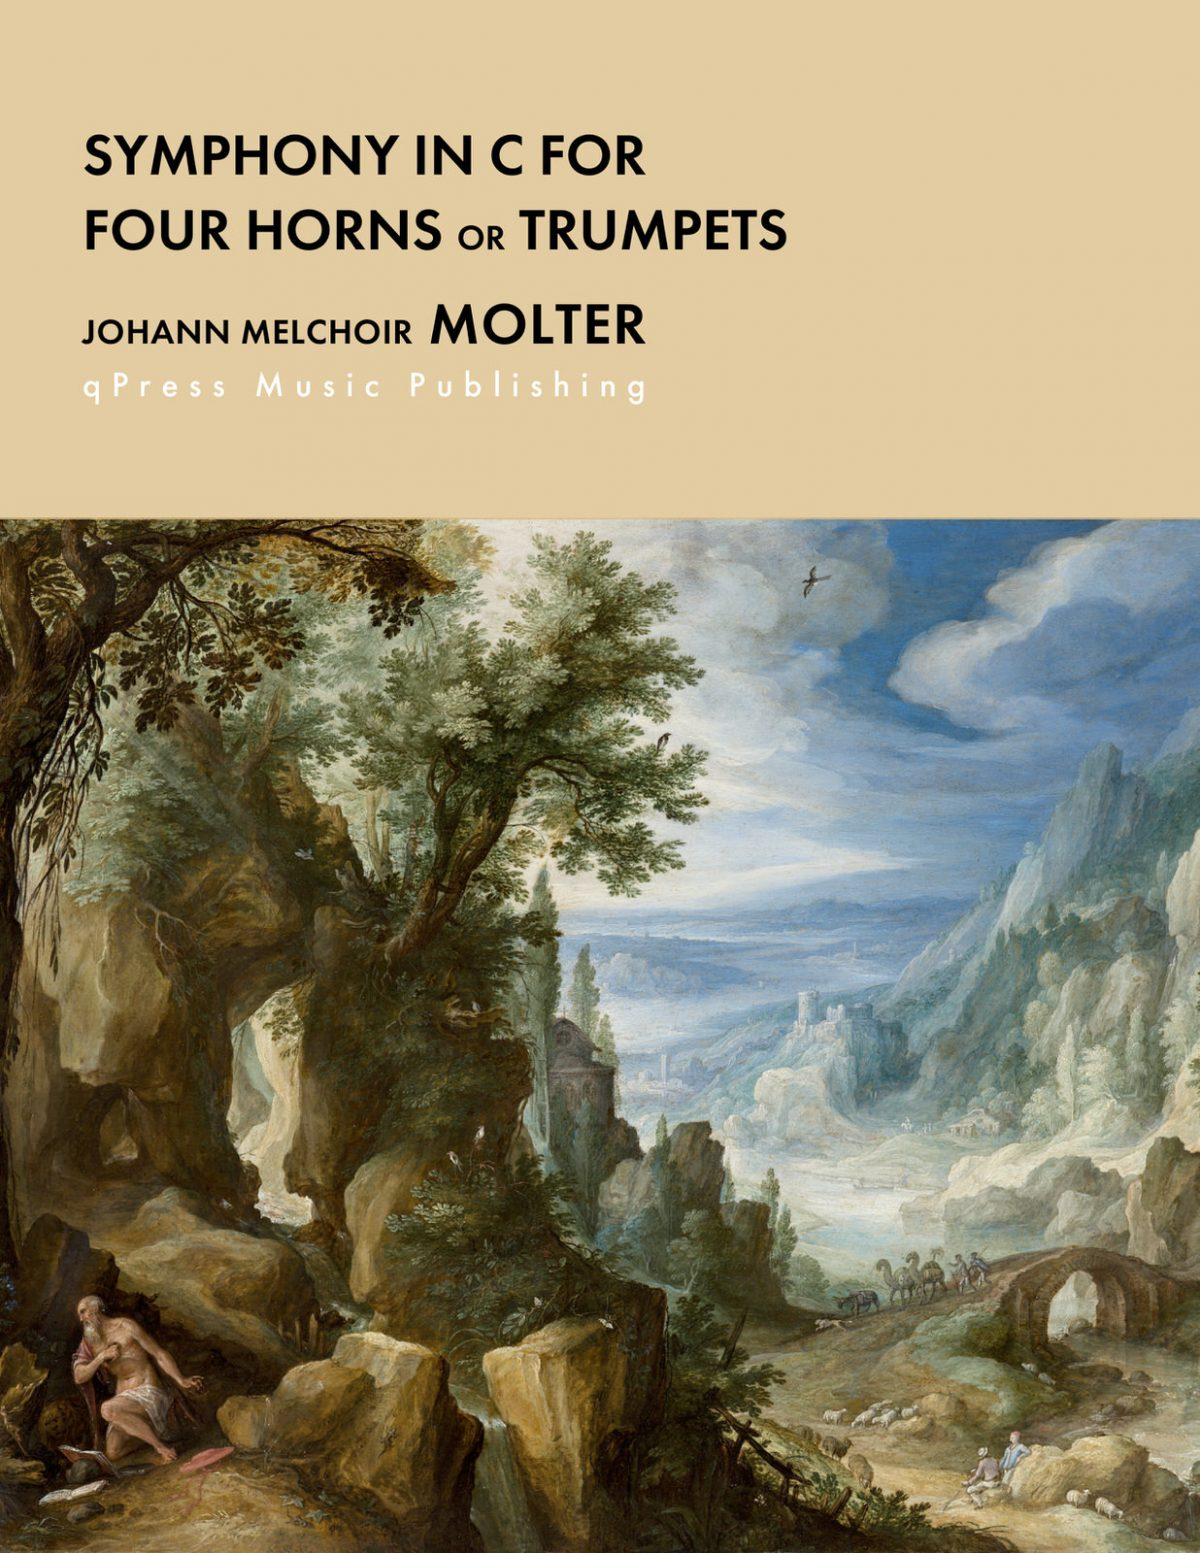 Molter, Symphony in C for 4 Trumpets or Horns